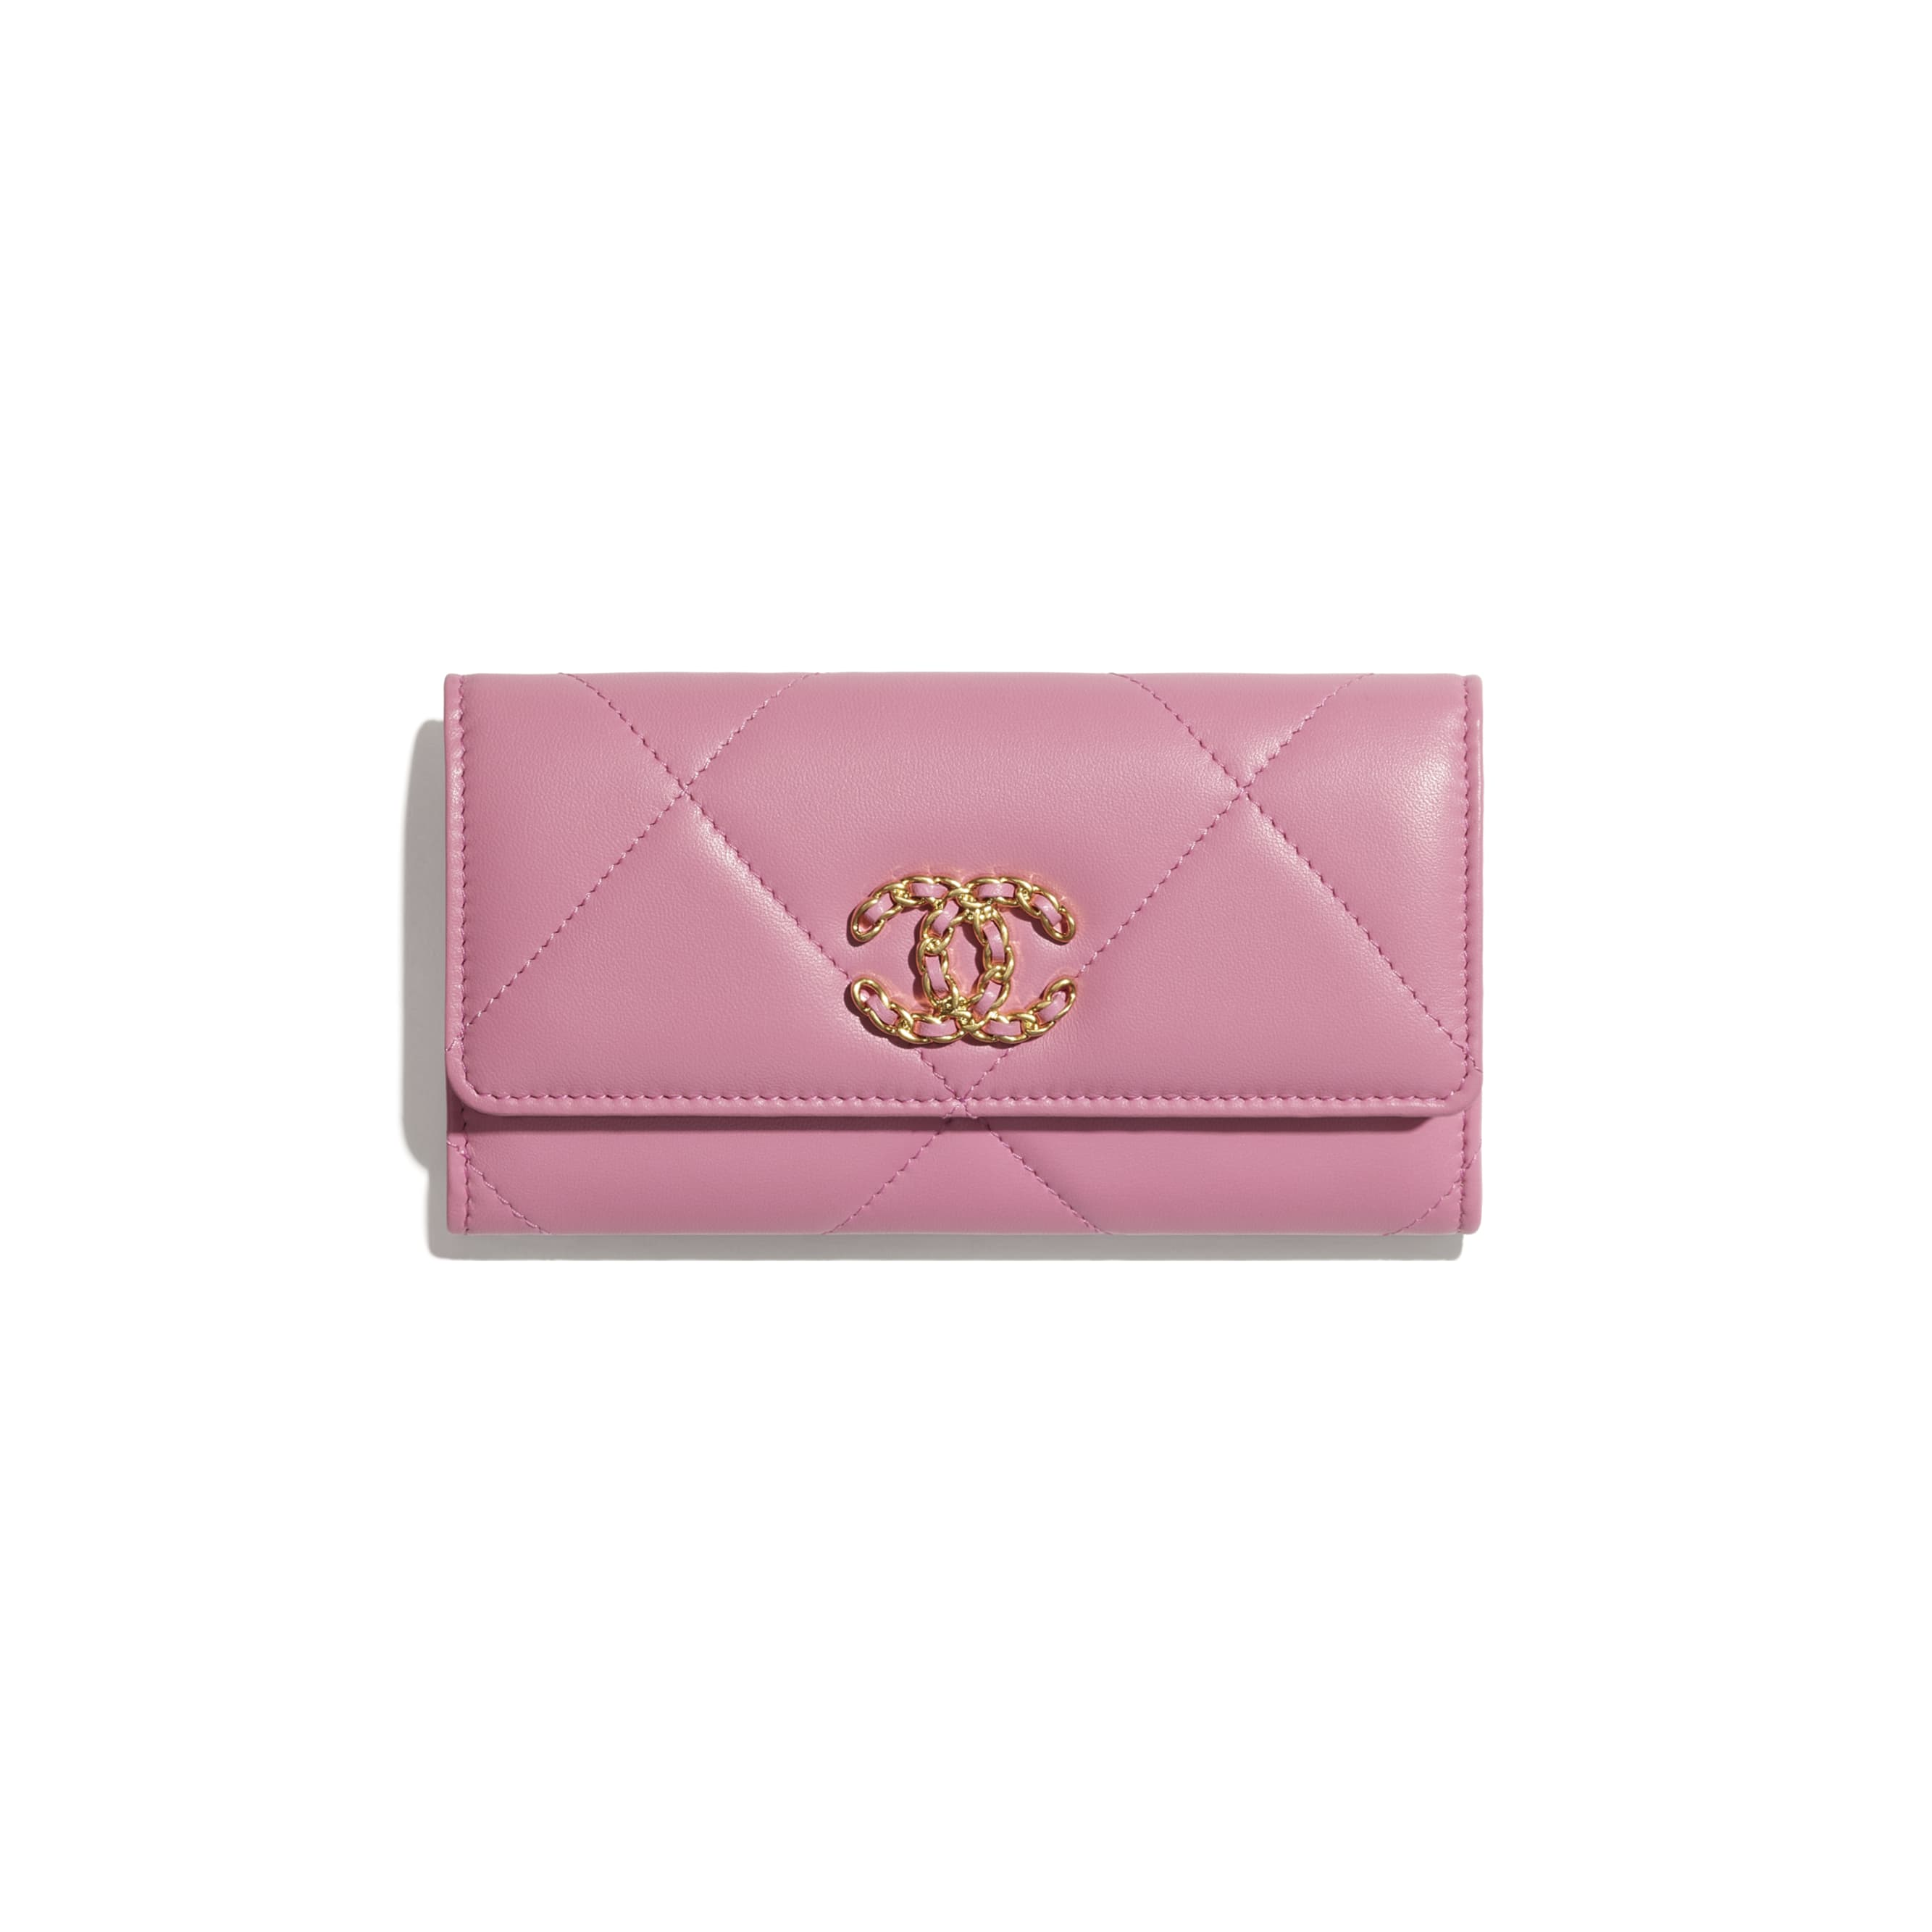 CHANEL 19 Flap Wallet - Pink - Lambskin, Gold-Tone, Silver-Tone & Ruthenium-Finish Metal - CHANEL - Default view - see standard sized version